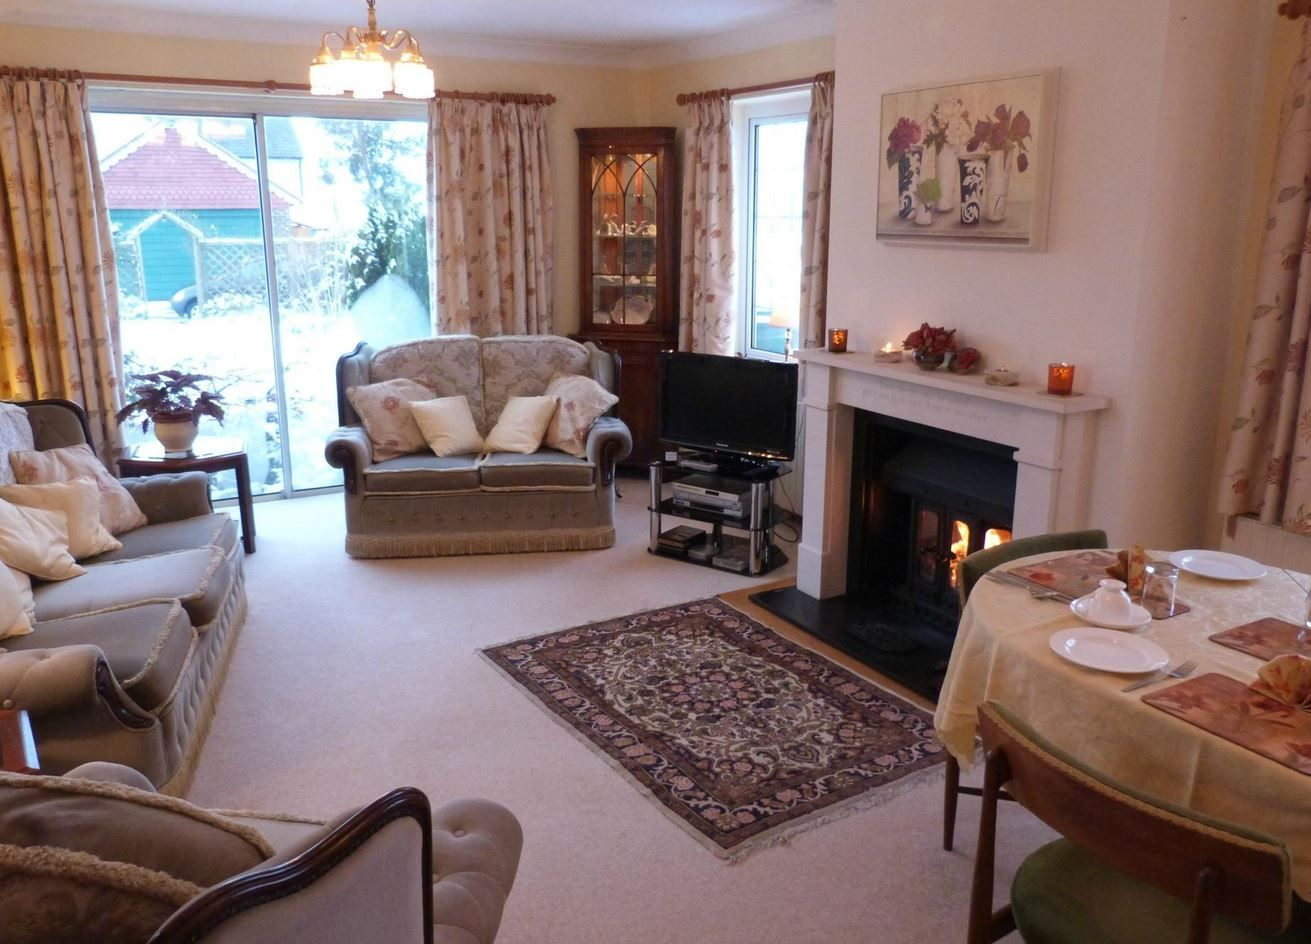 Bed And Breakfast Sudbury Suffolk Woodybanks Cottage B B Amberley Arundel West Sussex England